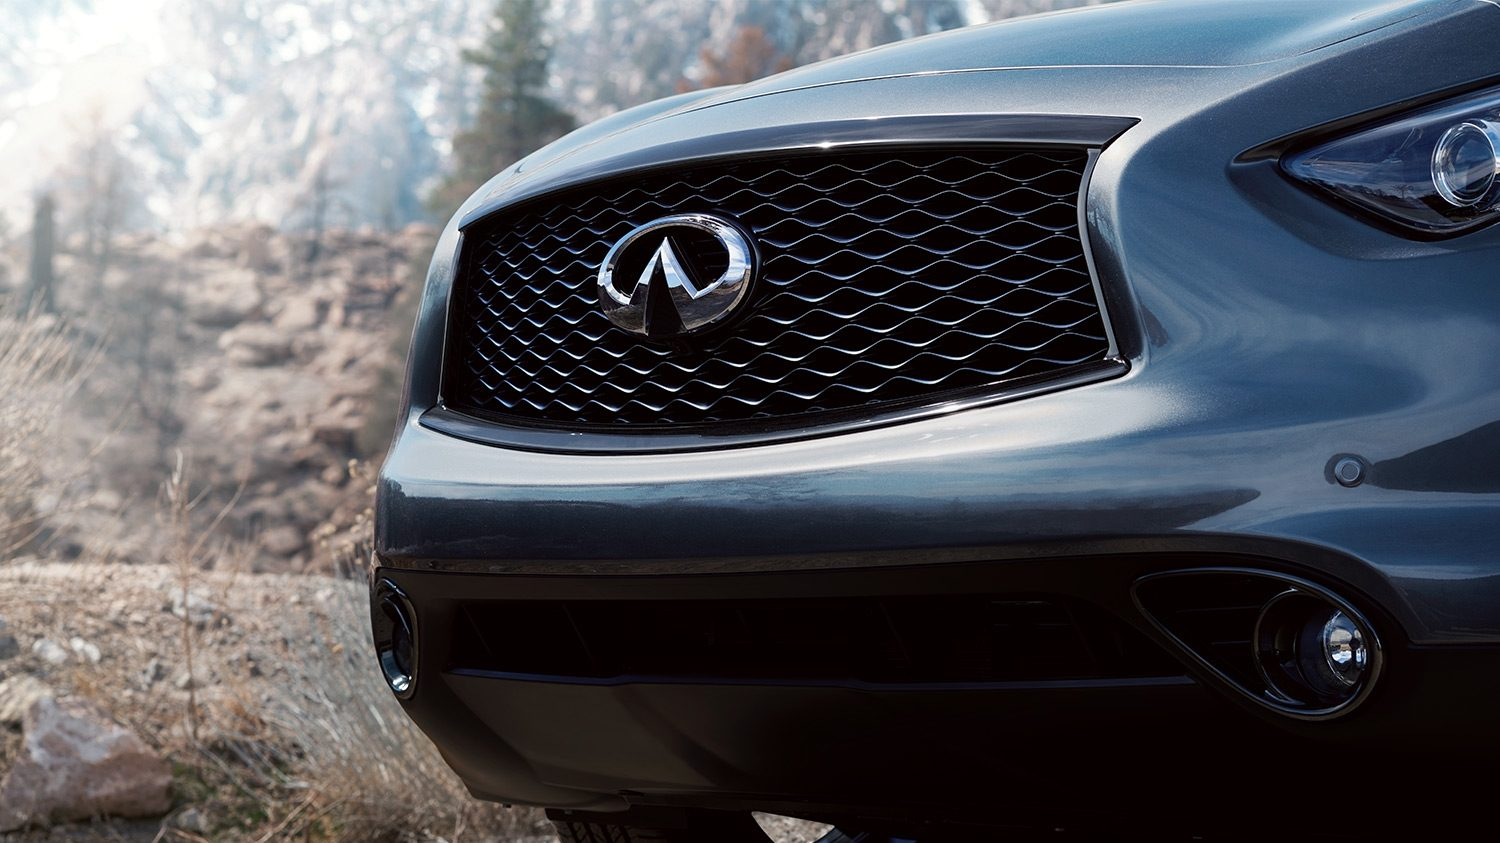 INFINITI QX70 Crossover SUV Exterior Front End Double Arch Grille